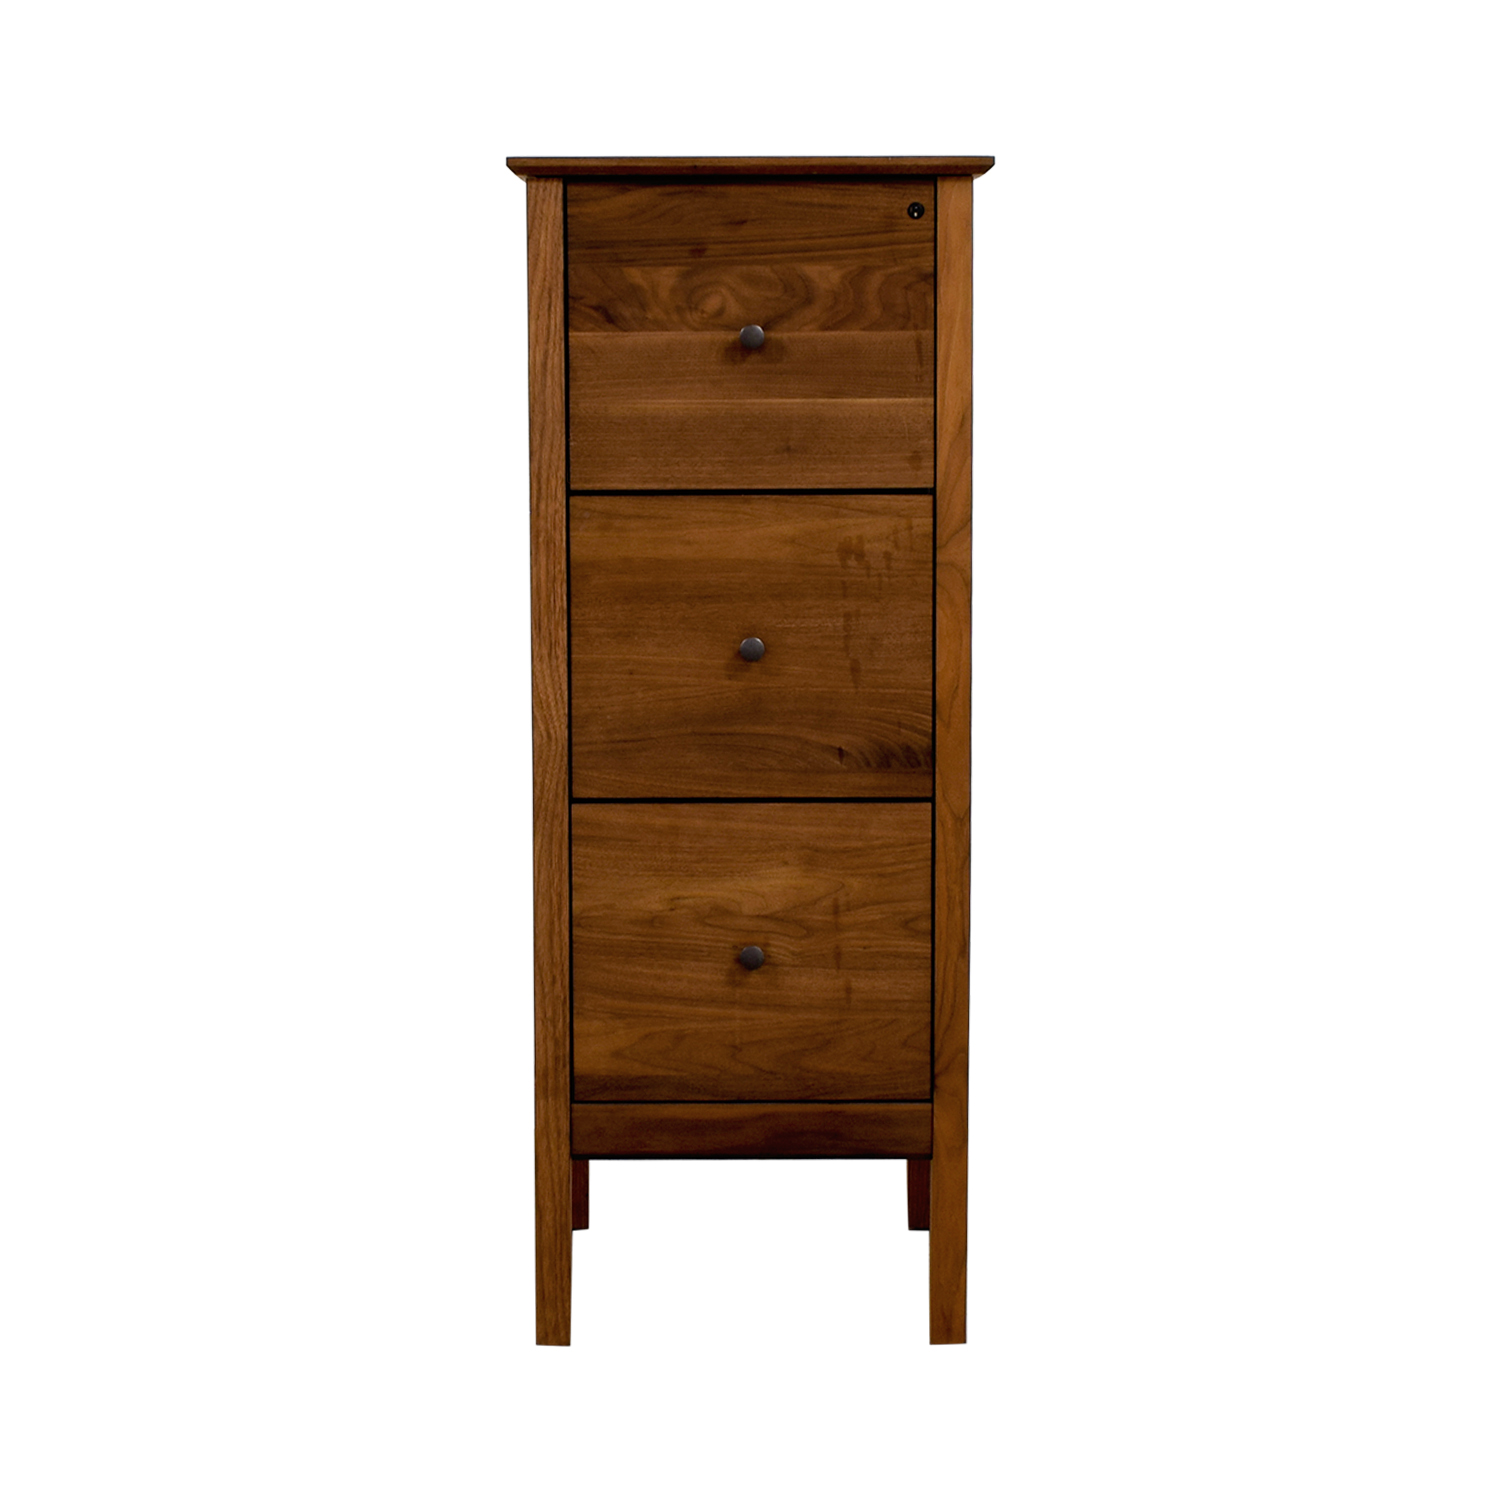 buy Crate & Barrel Wood Dresser Crate & Barrel Dressers